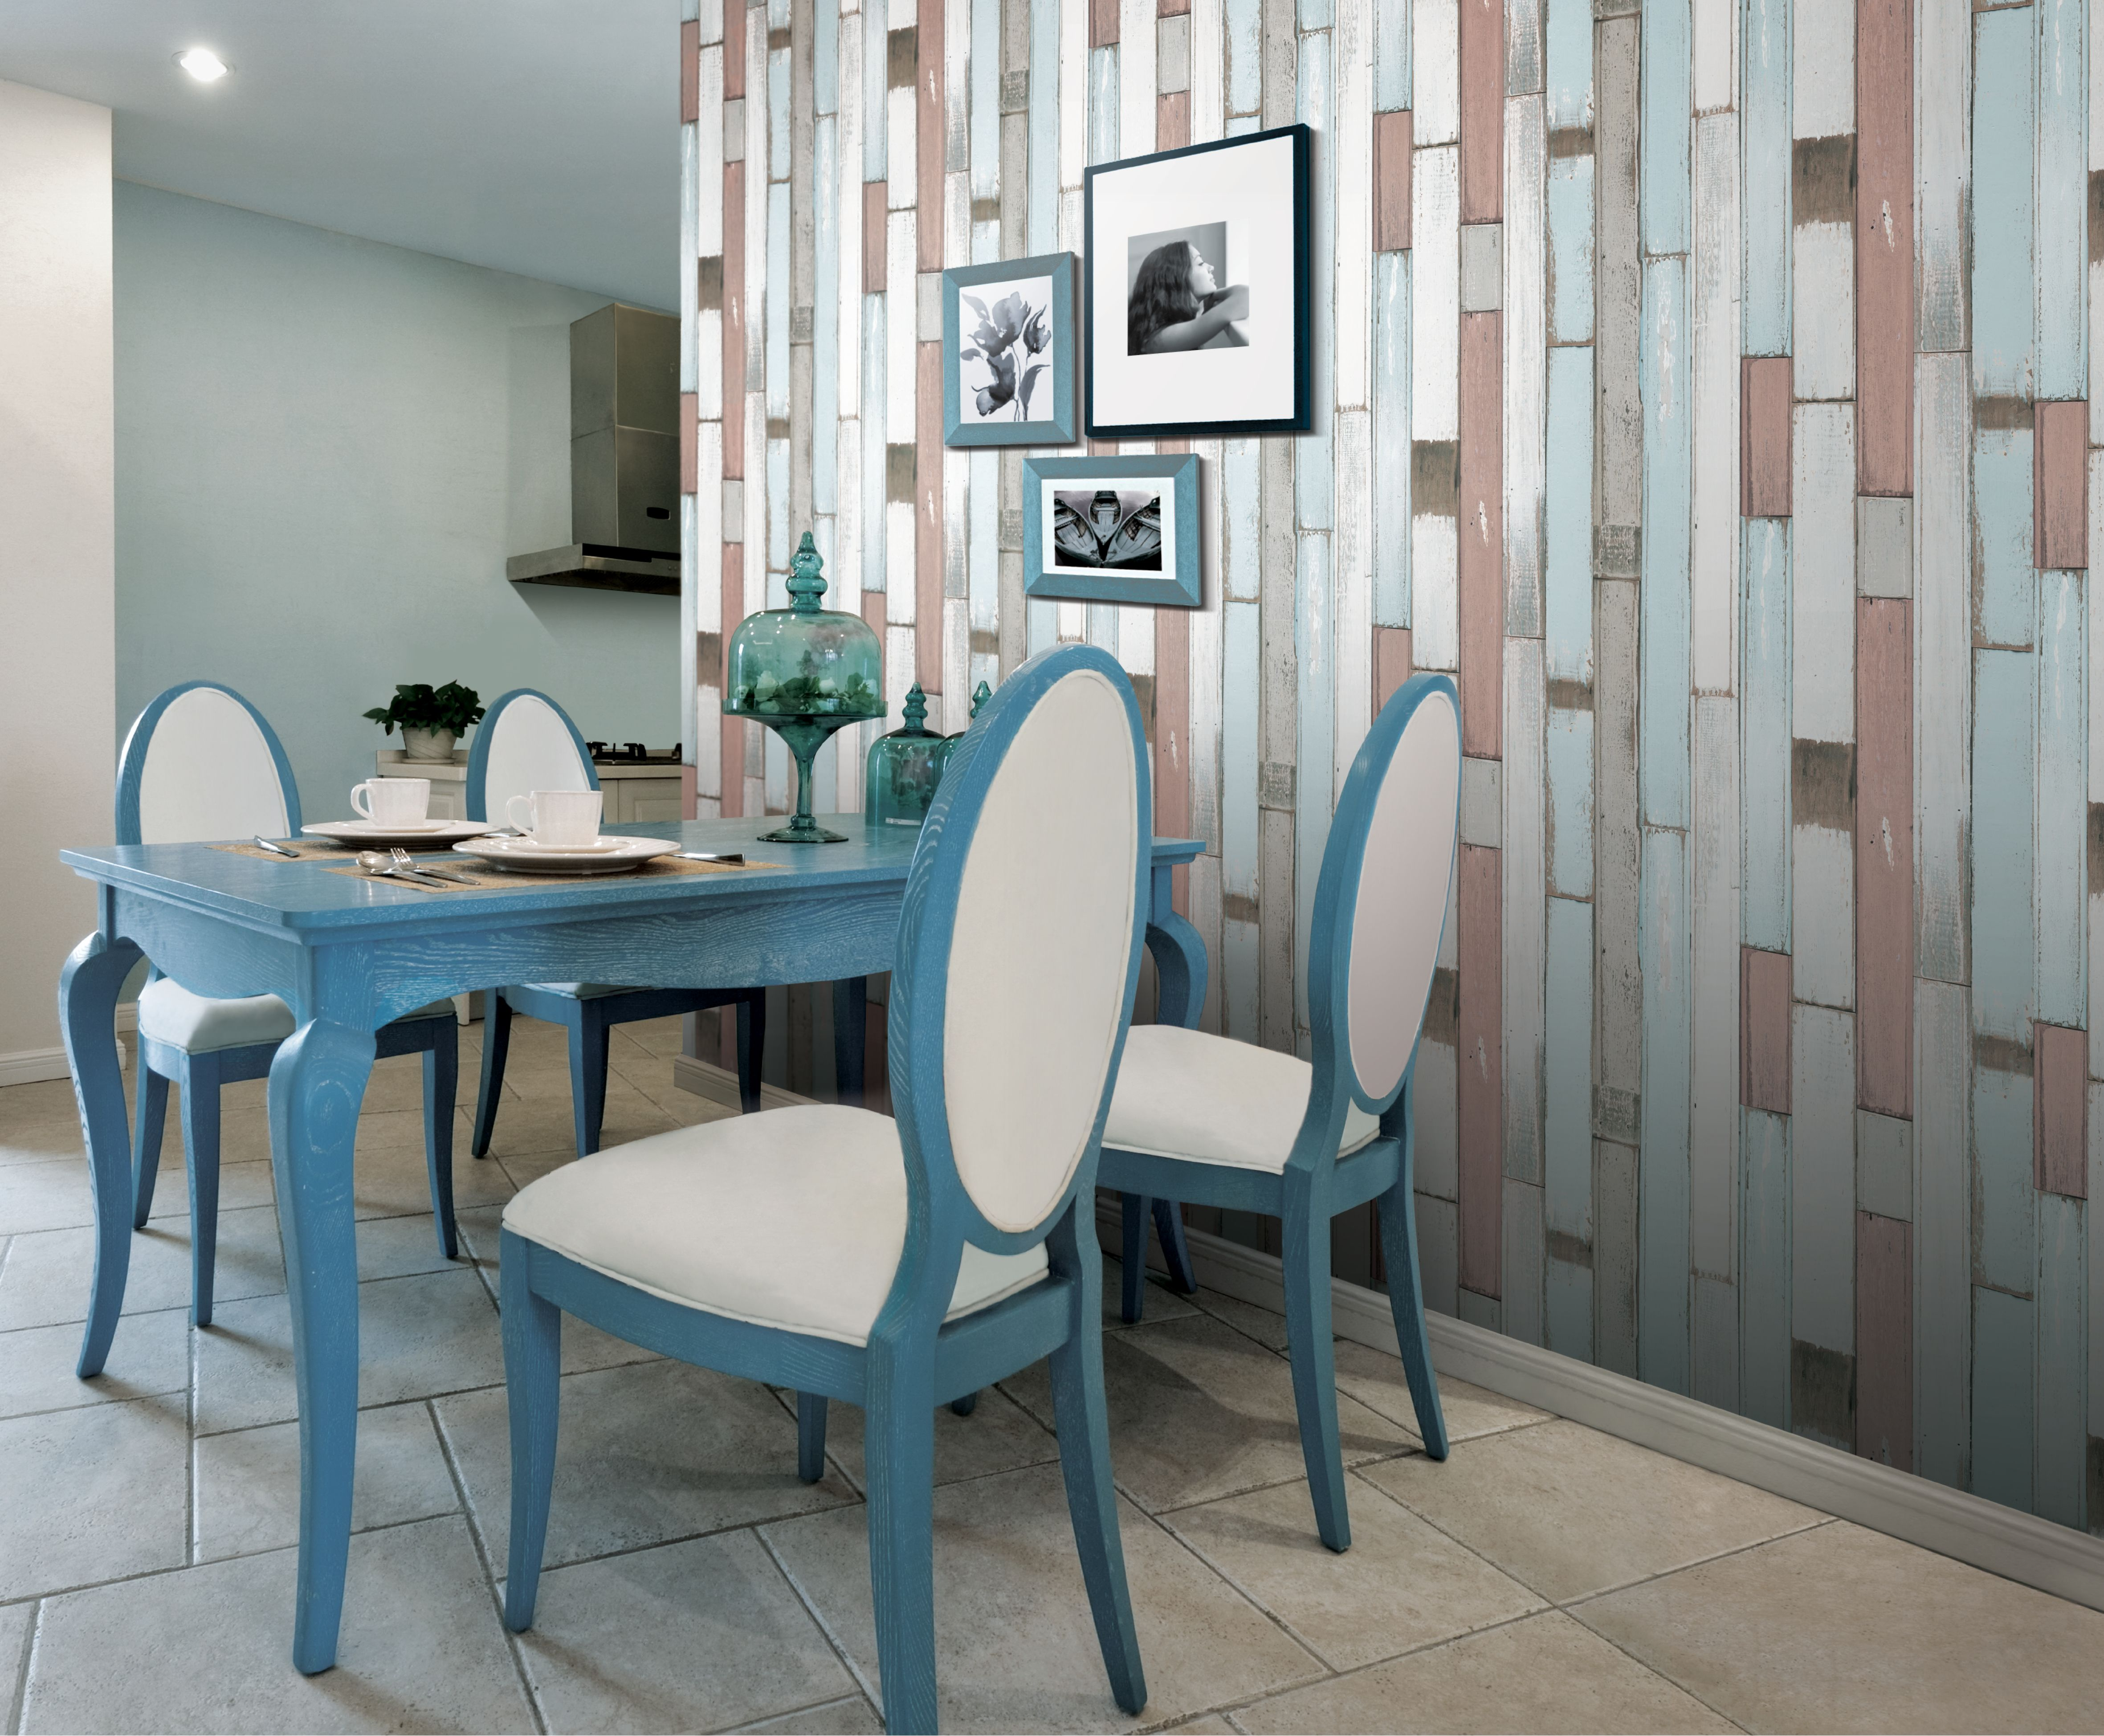 Superb img of multi wood panelling by Serendipity at wallpaperdirect.co.uk £34.95  with #314F5E color and 4724x3898 pixels